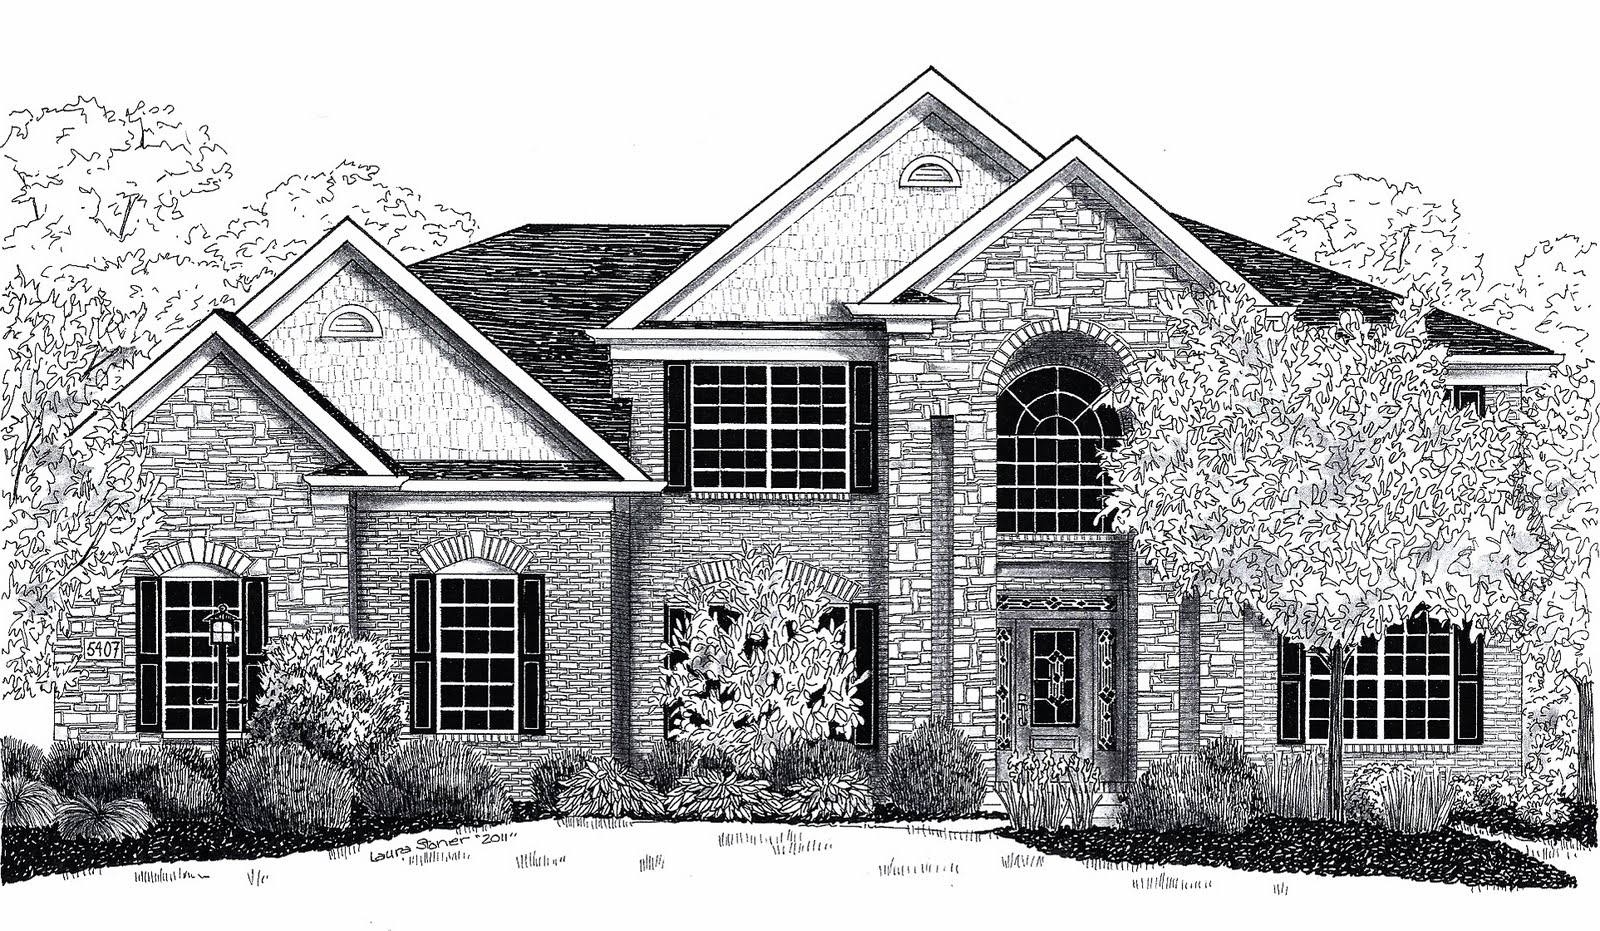 Crazy linez house drawings for Two story house drawing